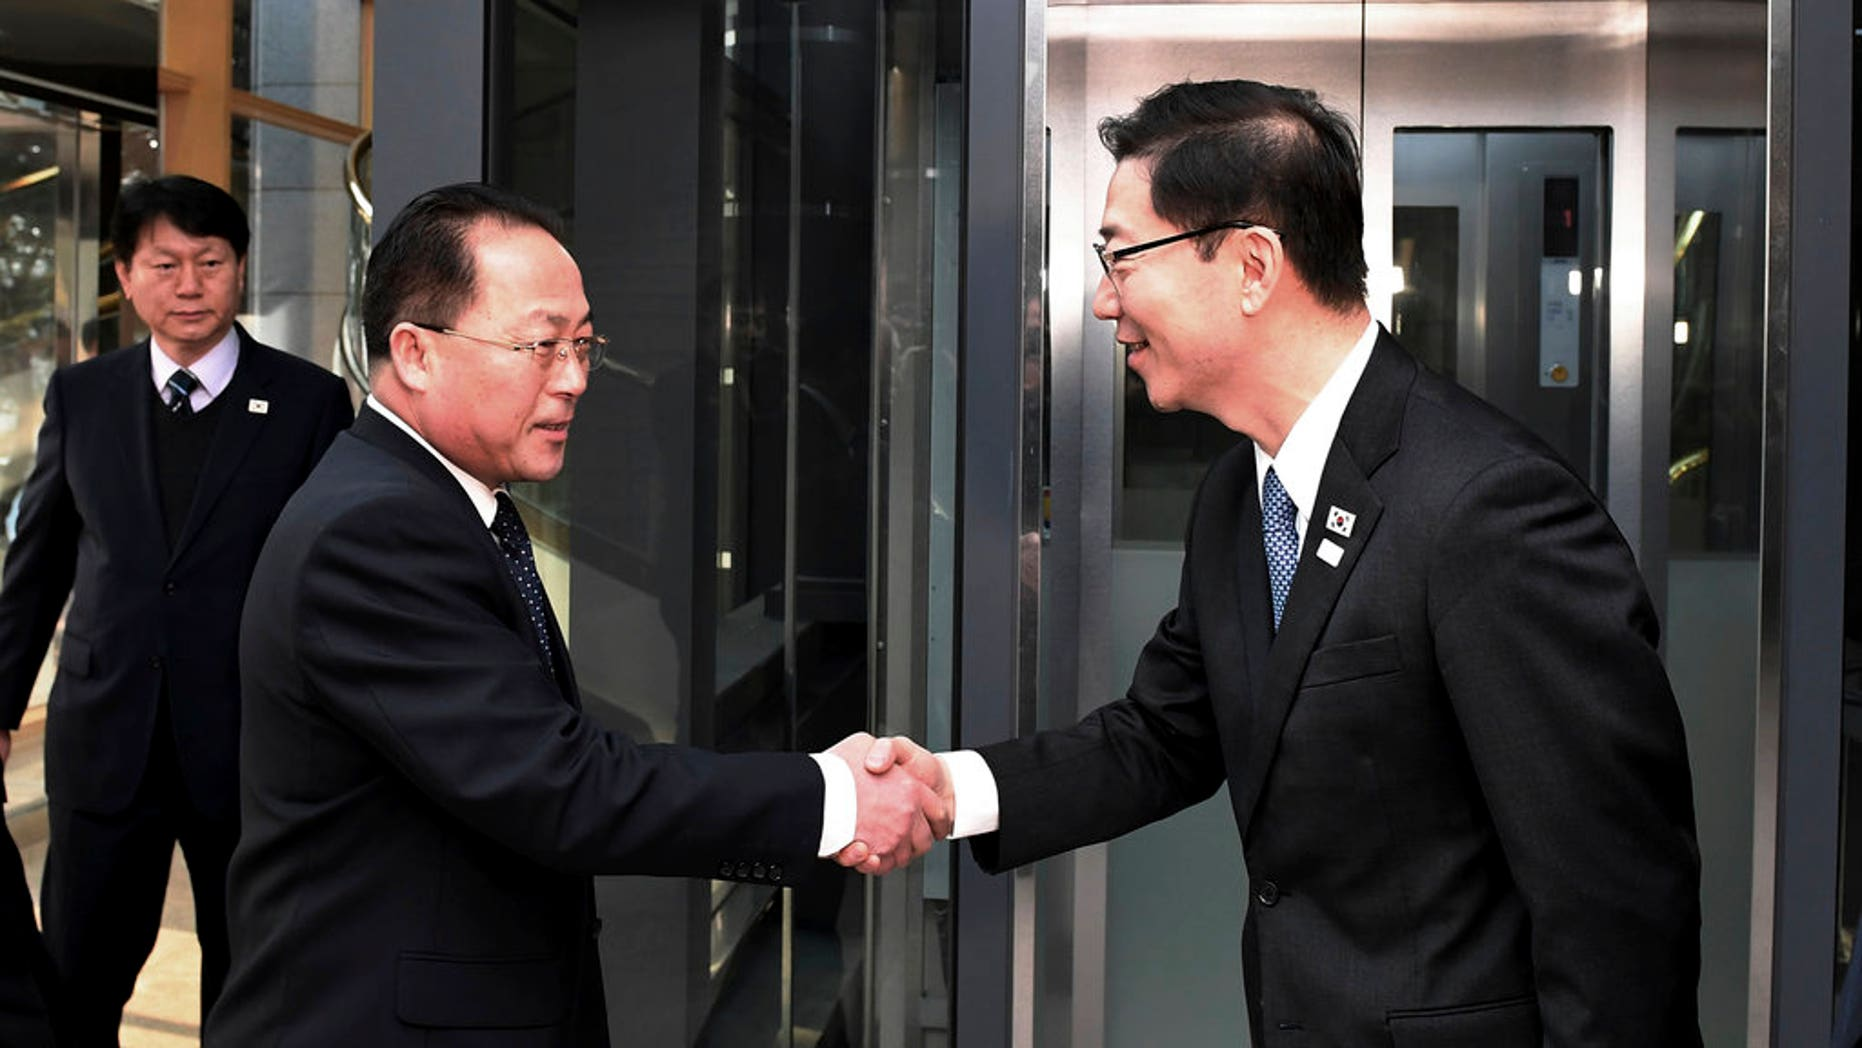 South Korean Vice Unification Minister Chun Hae-sung, right, shakes hands with the head of North Korean delegation Jon Jong Su before a meeting to discuss Olympics cooperation.